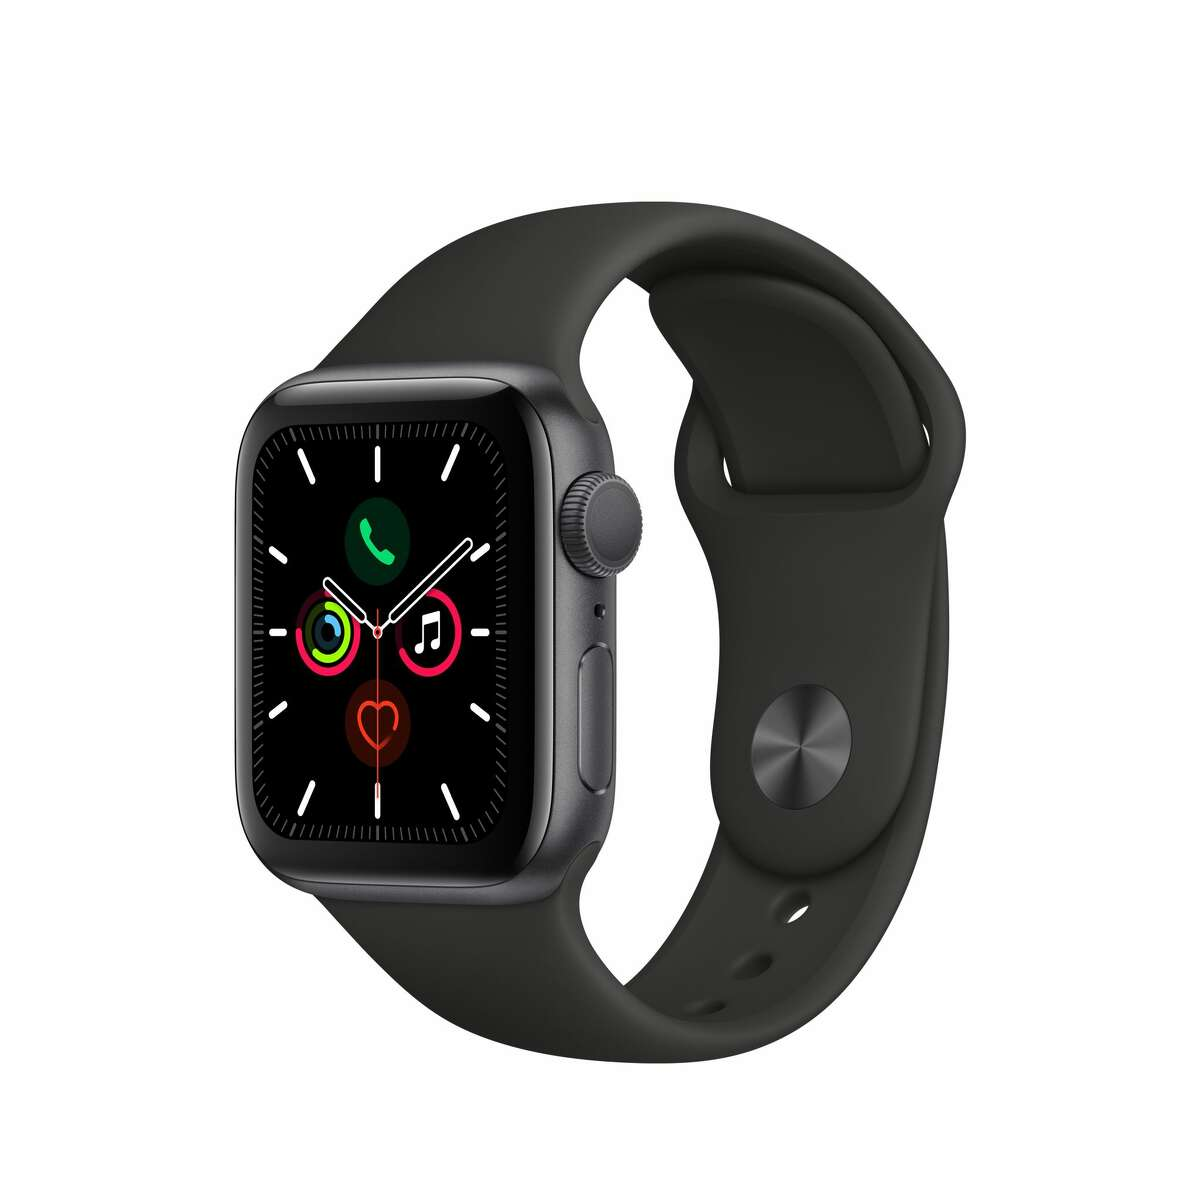 Apple Watch Series 5 GPS, 44mm Silver Aluminum Case with White Sport Band - S/M & M/L for $429.00 at Walmart Apple Watch Series 5 GPS, 40mm Space Gray Aluminum Case with Black Sport Band - S/M & M/L for $399.00 at Walmart